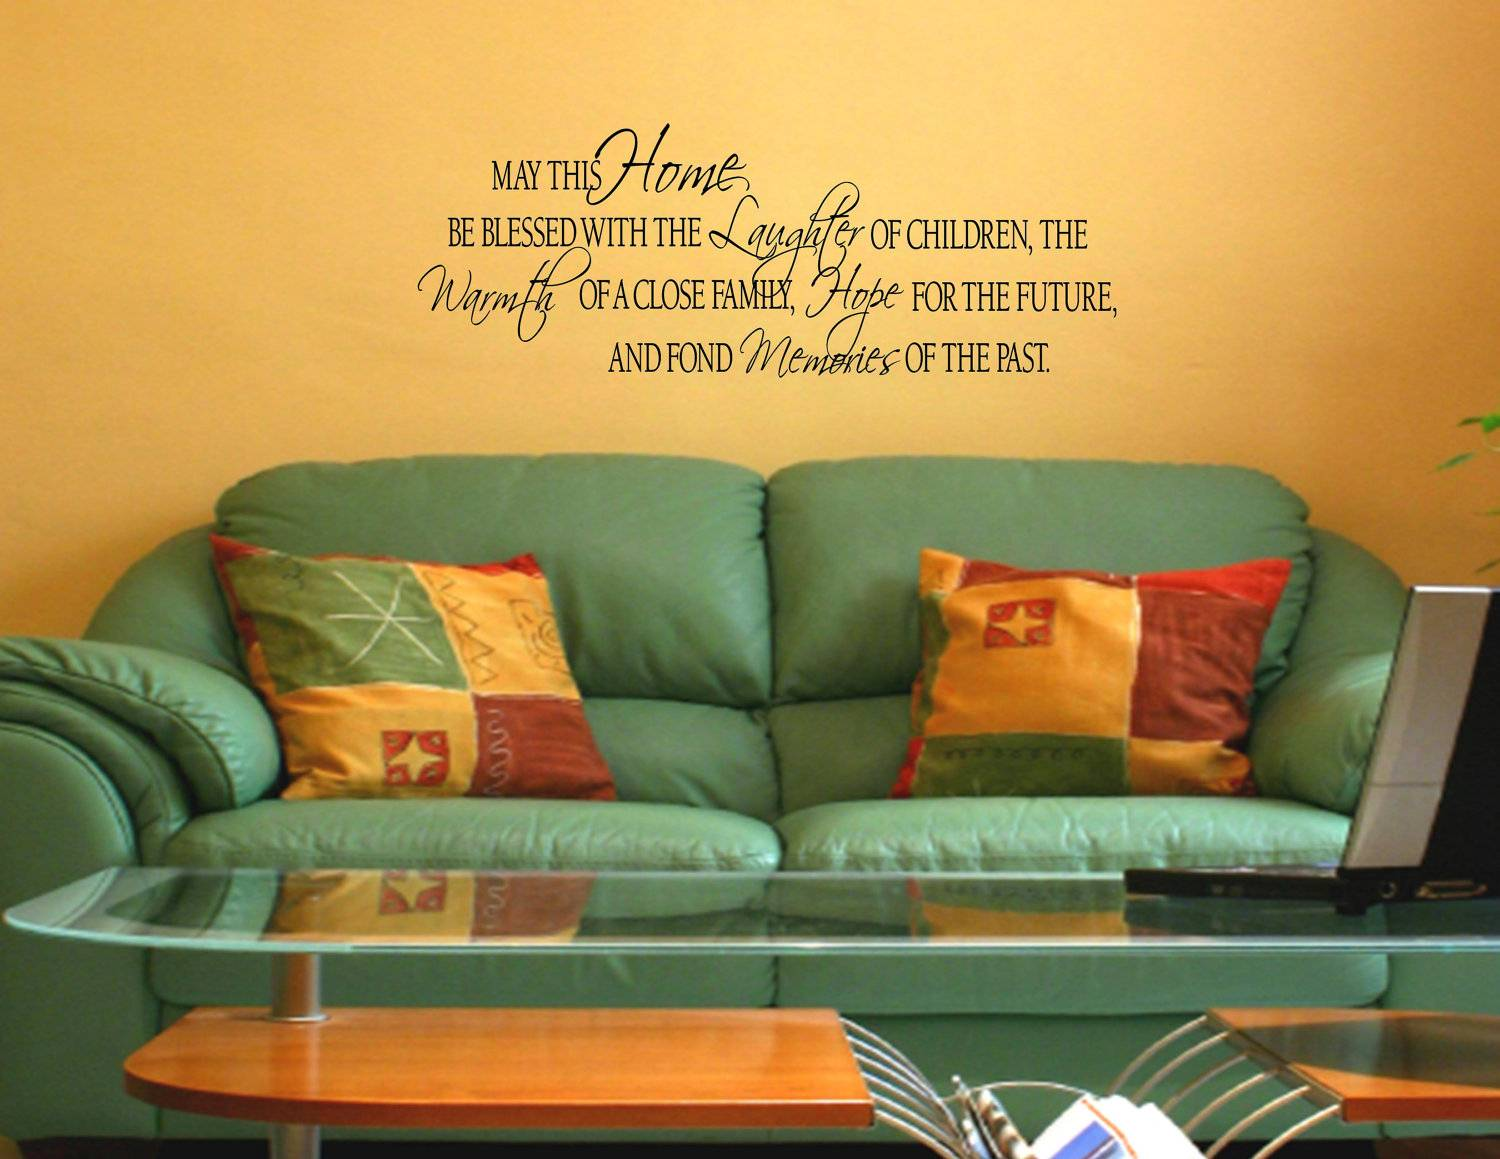 Home quote #6